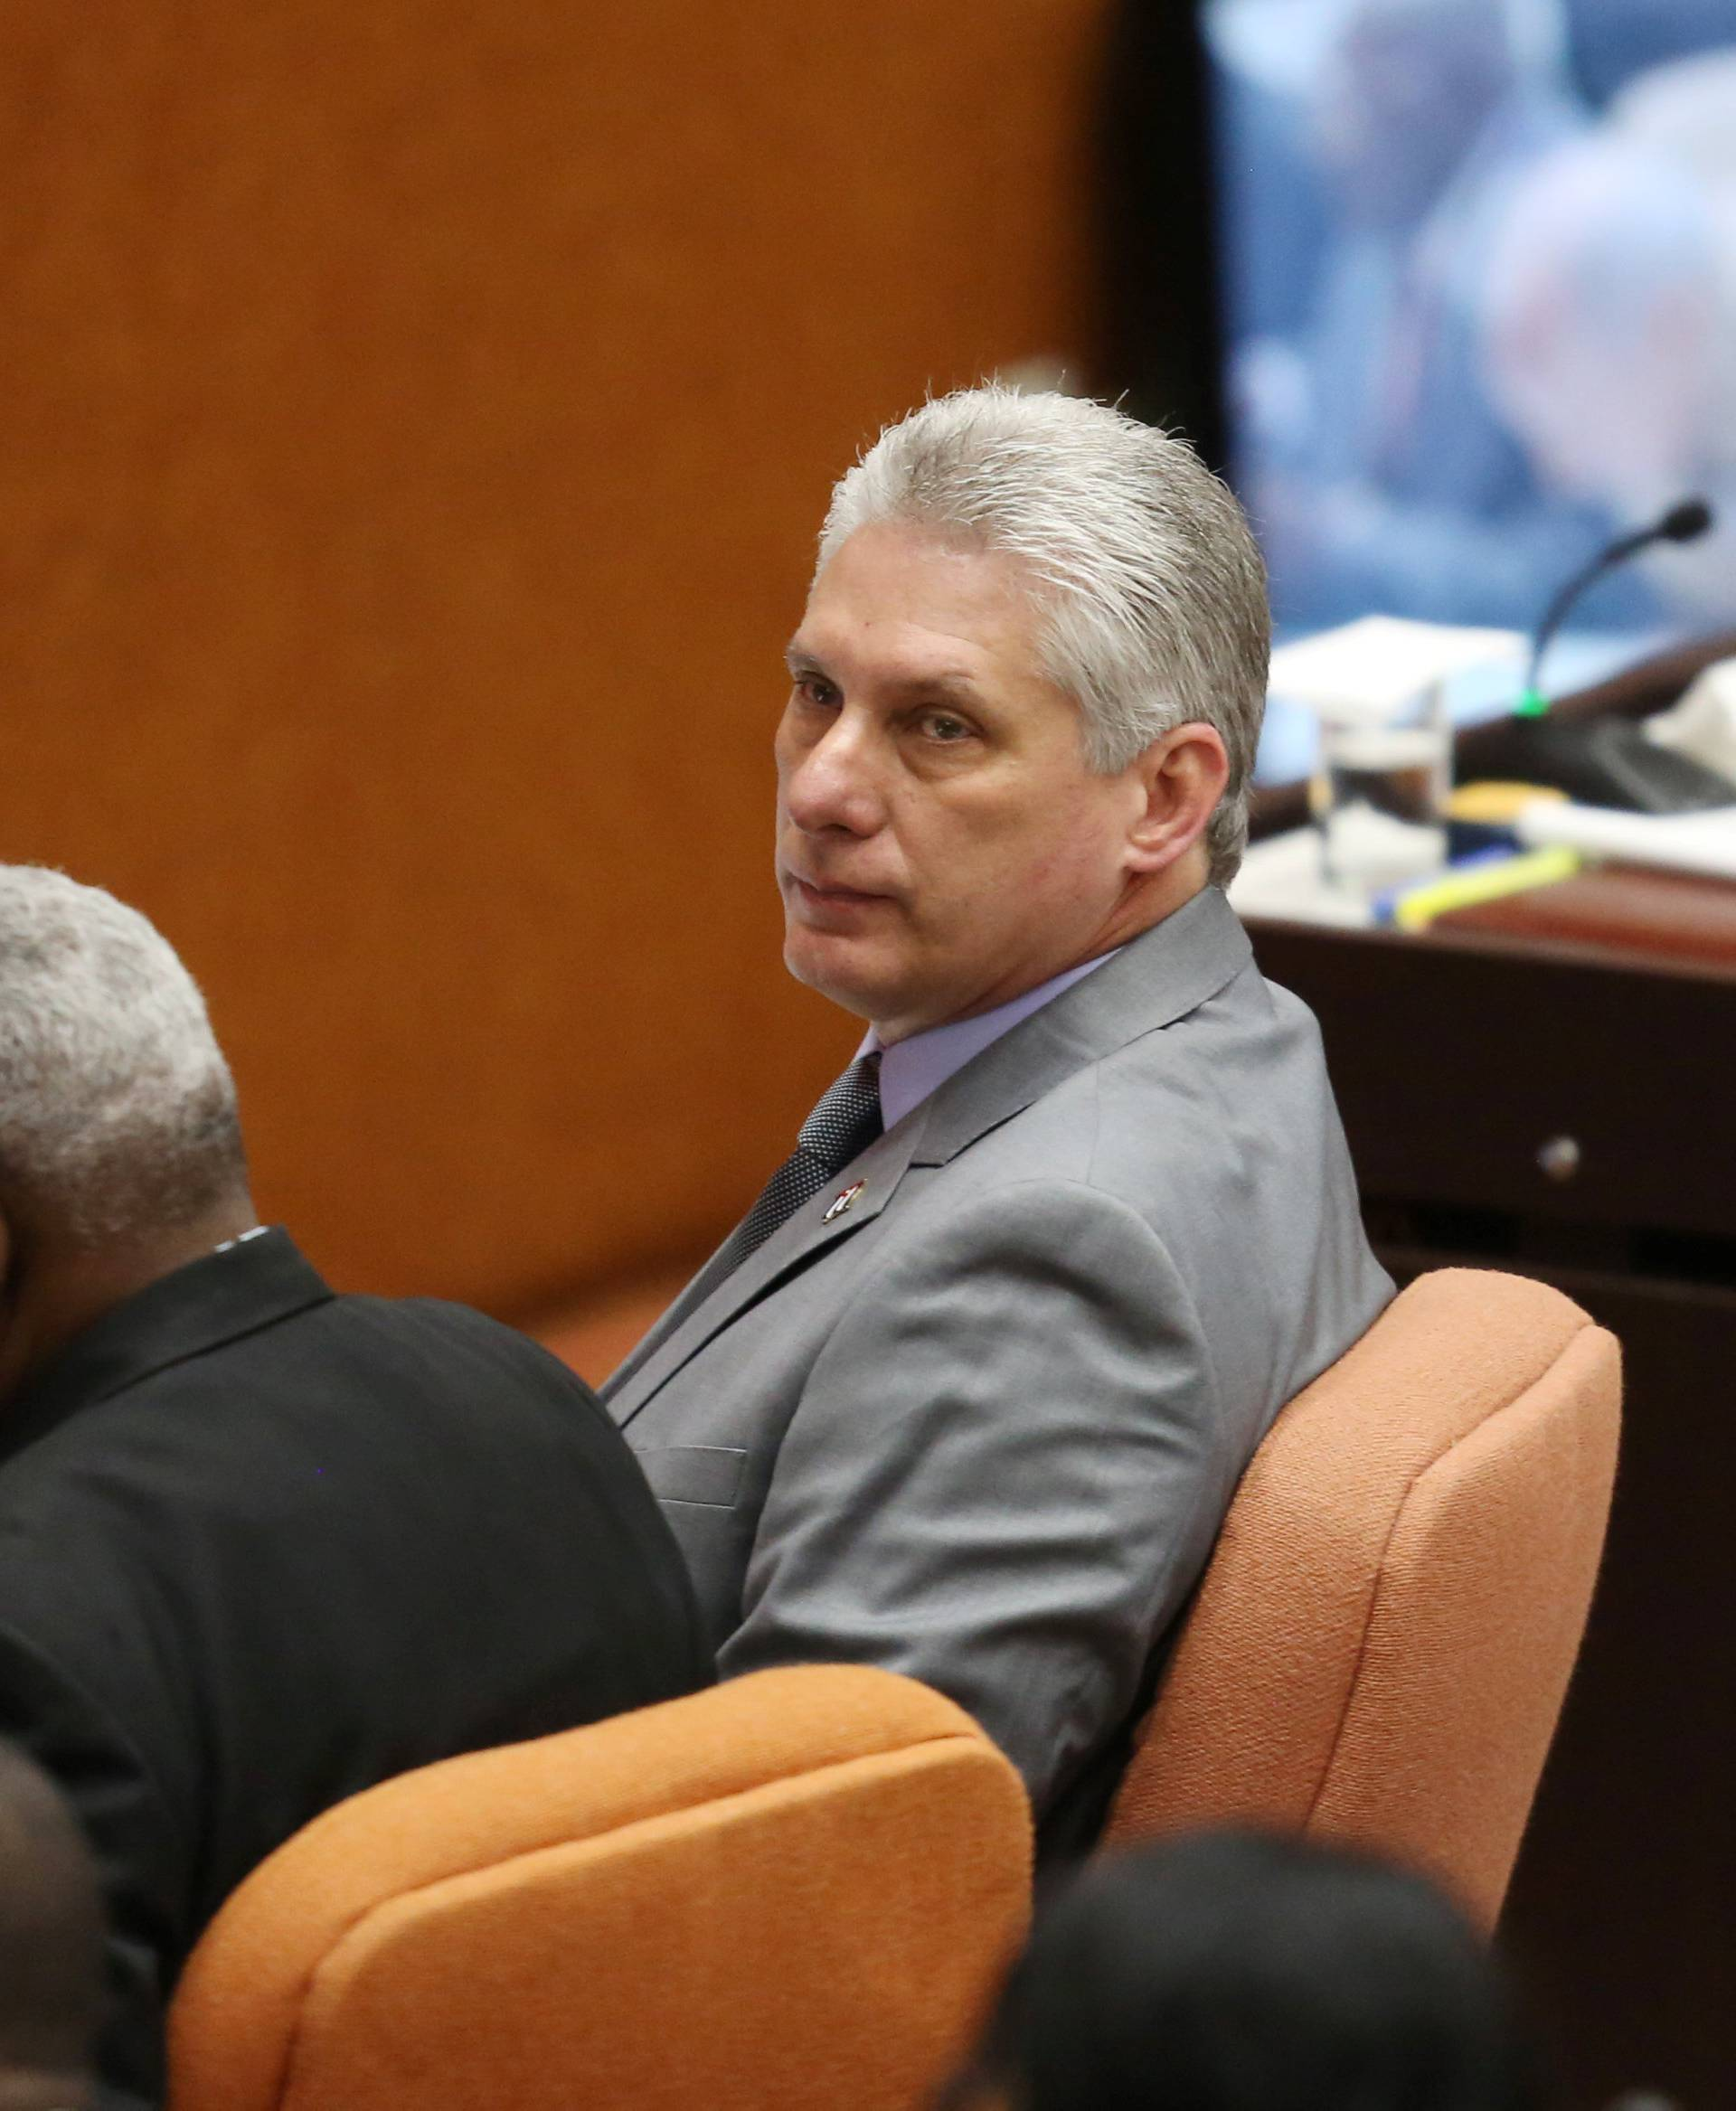 Cuba's First Vice-President Miguel Diaz-Canel takes part in a session of the National Assembly in Havana